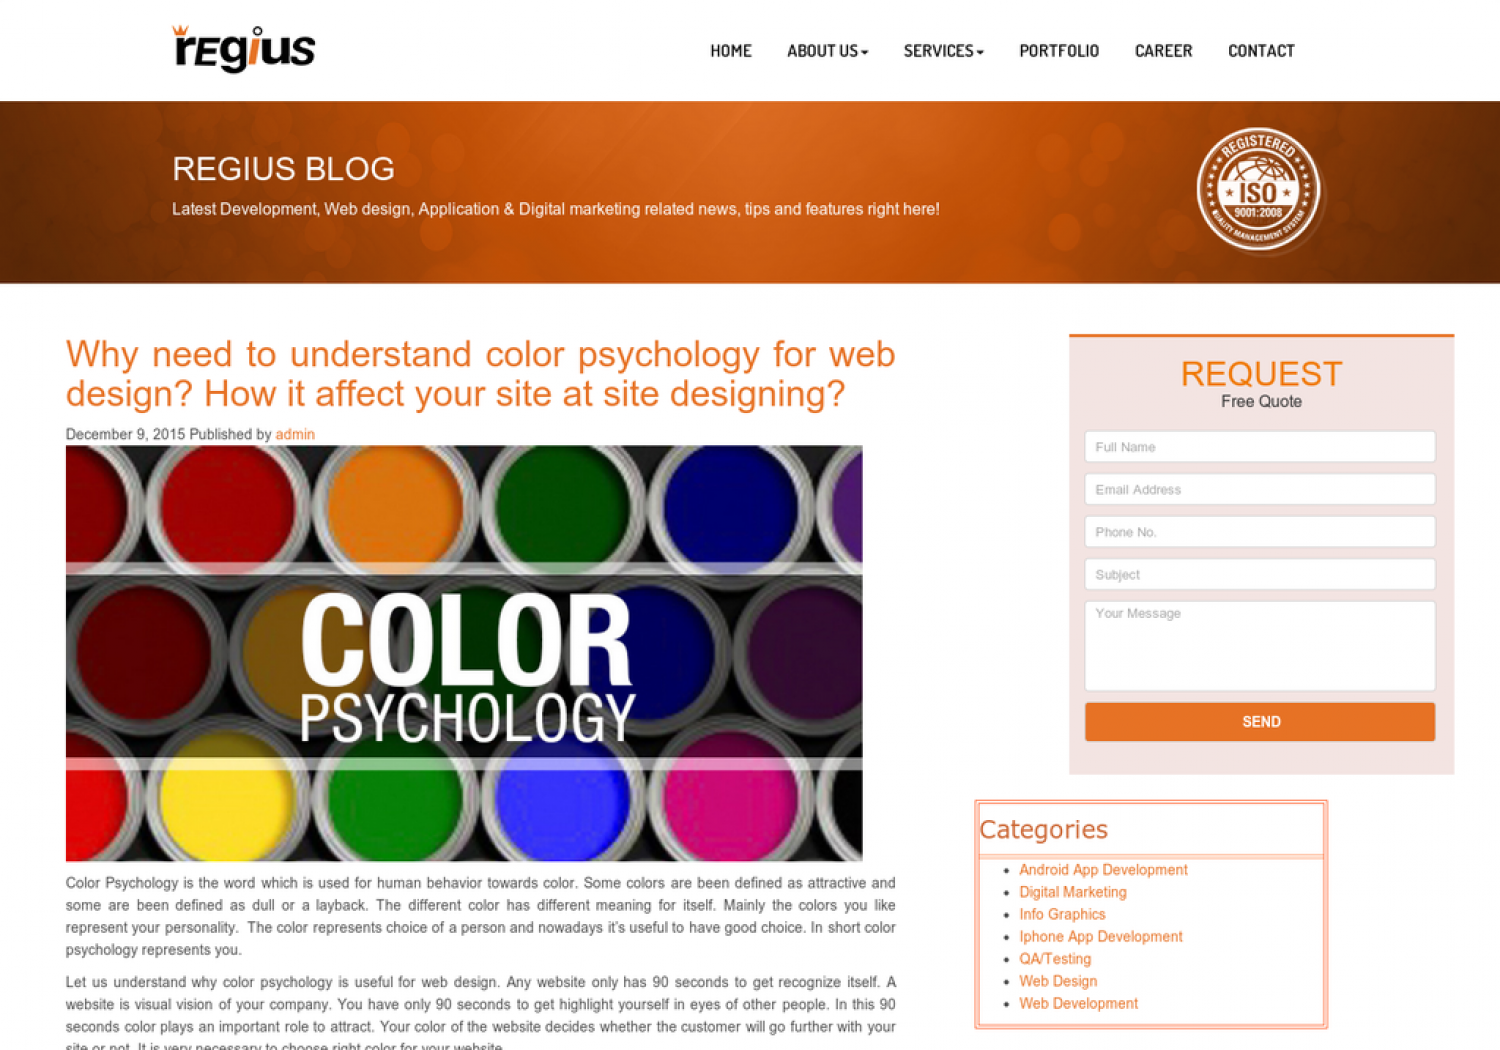 Colors web design psychology - Why Need To Understand Color Psychology For Web Design How It Affect Your Site At